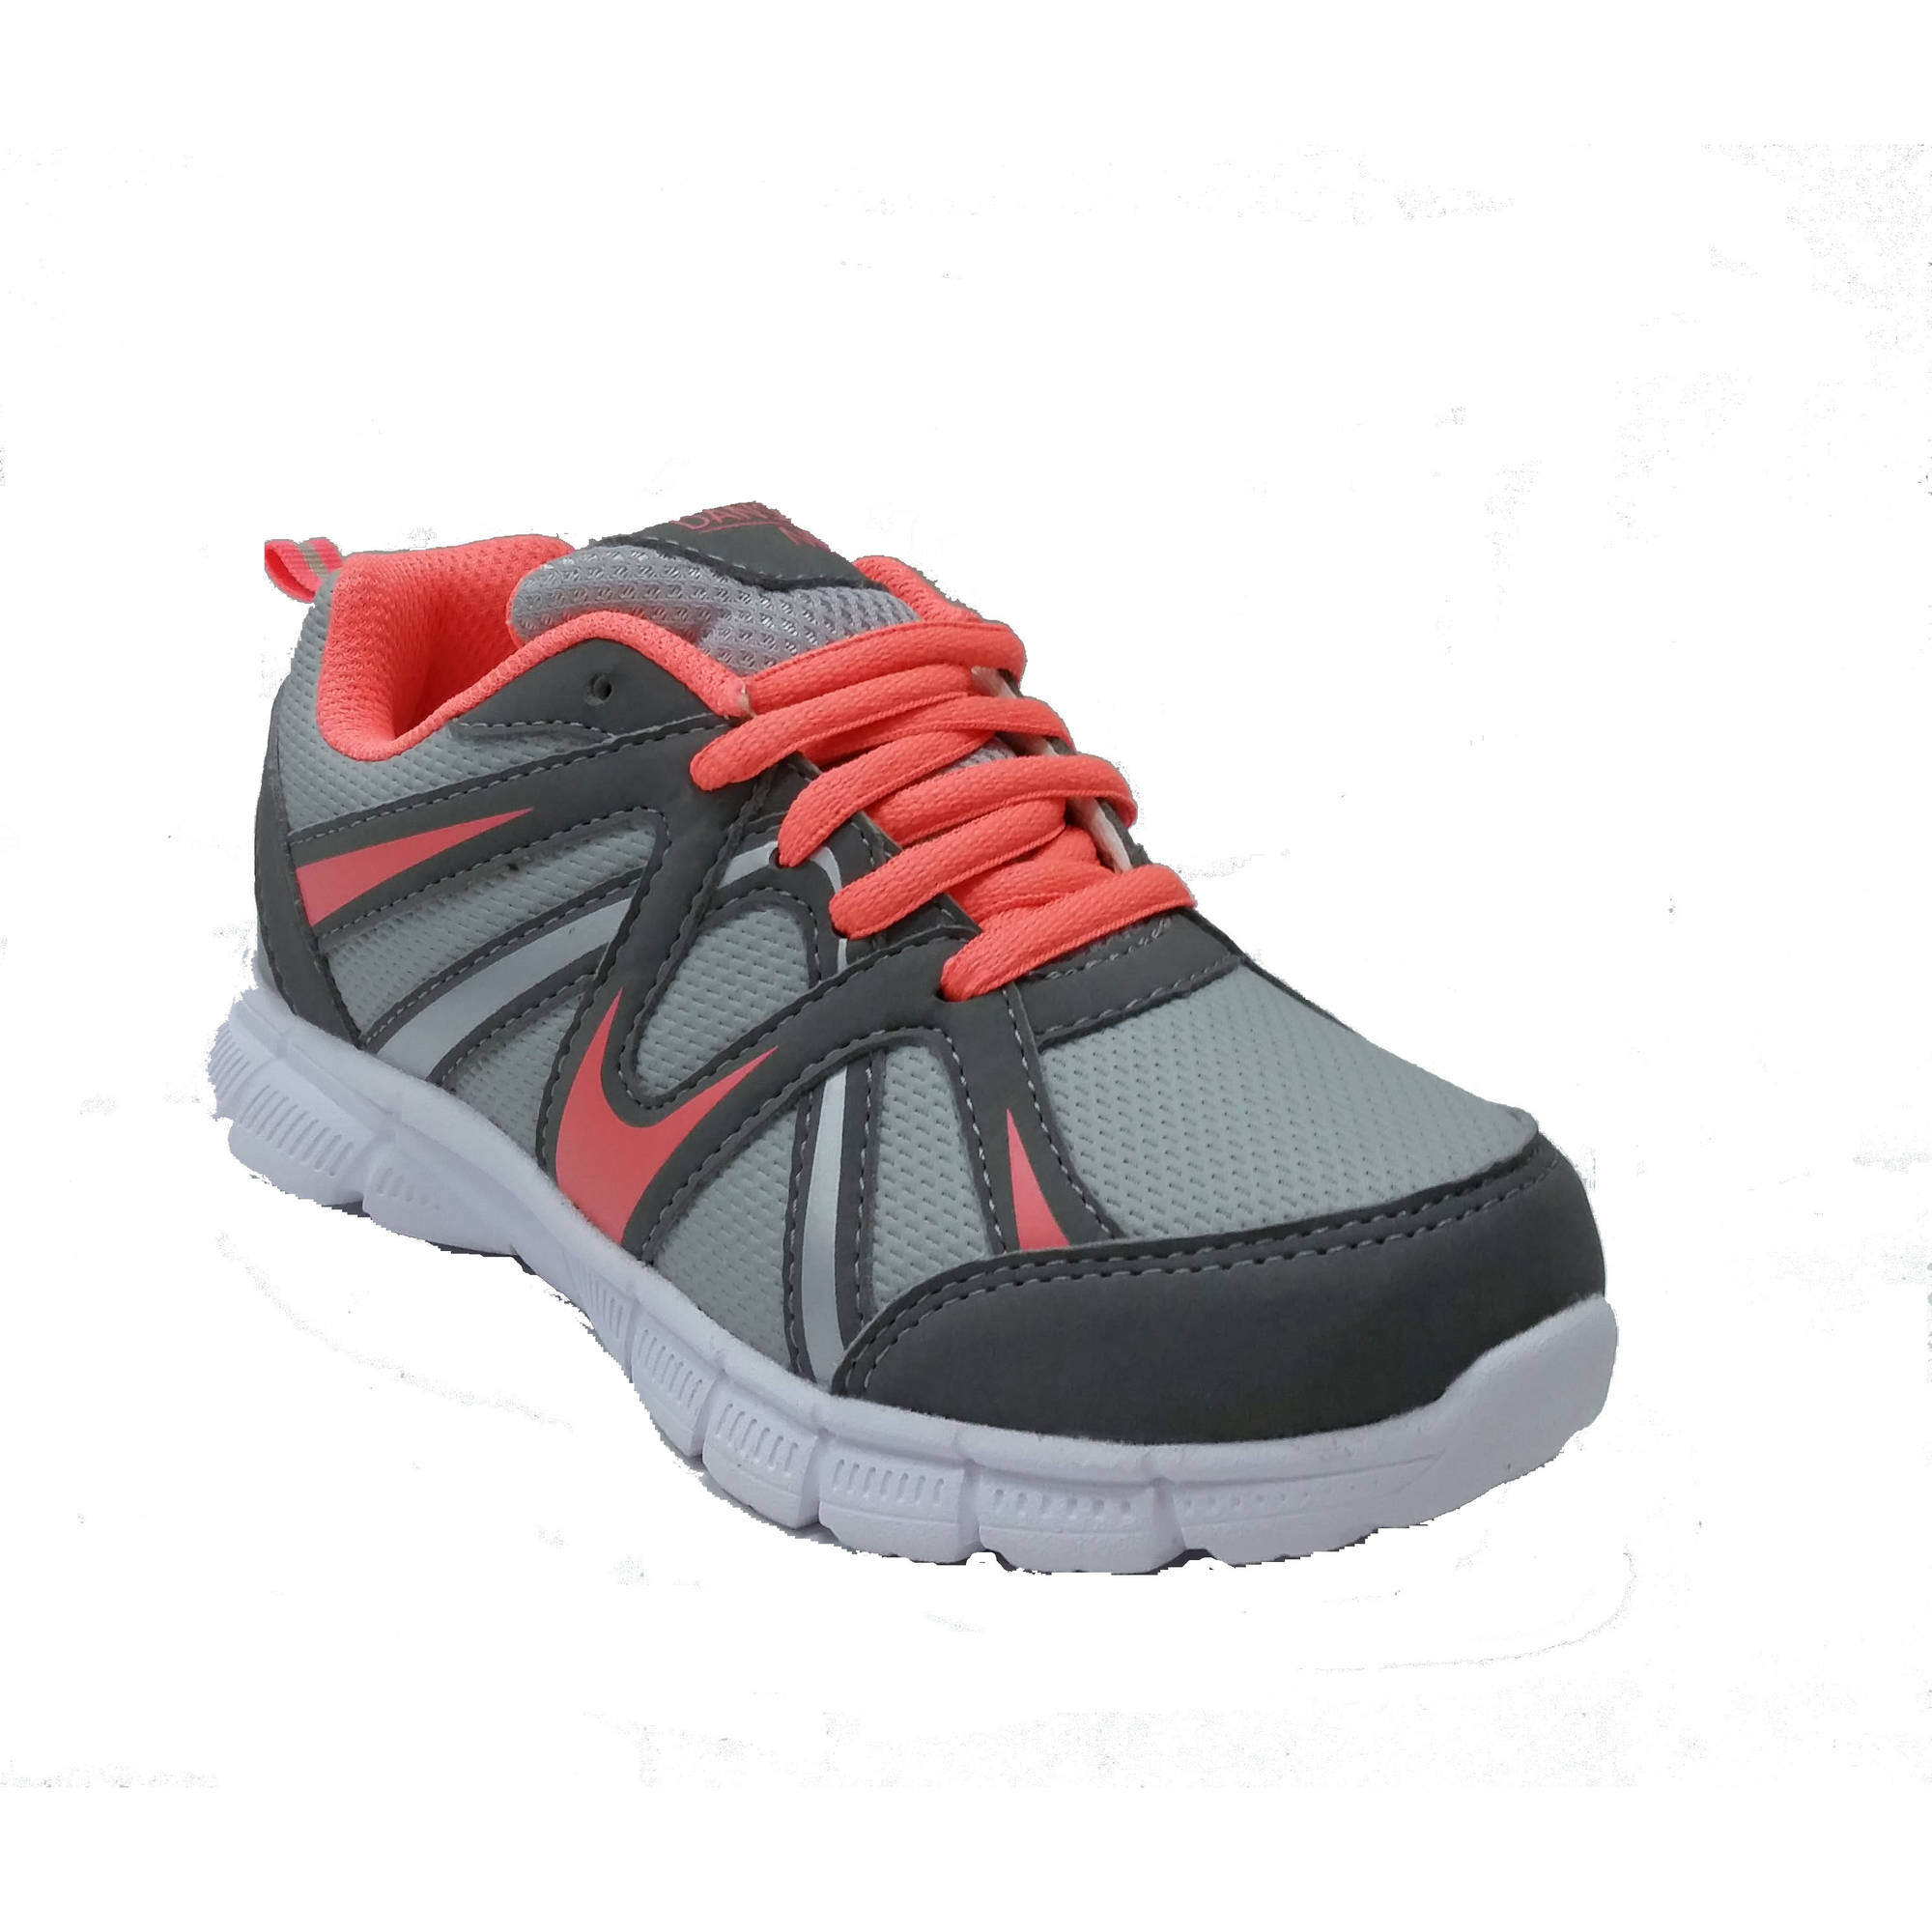 Danskin Now Girls' Lightweight Athletic Shoe by